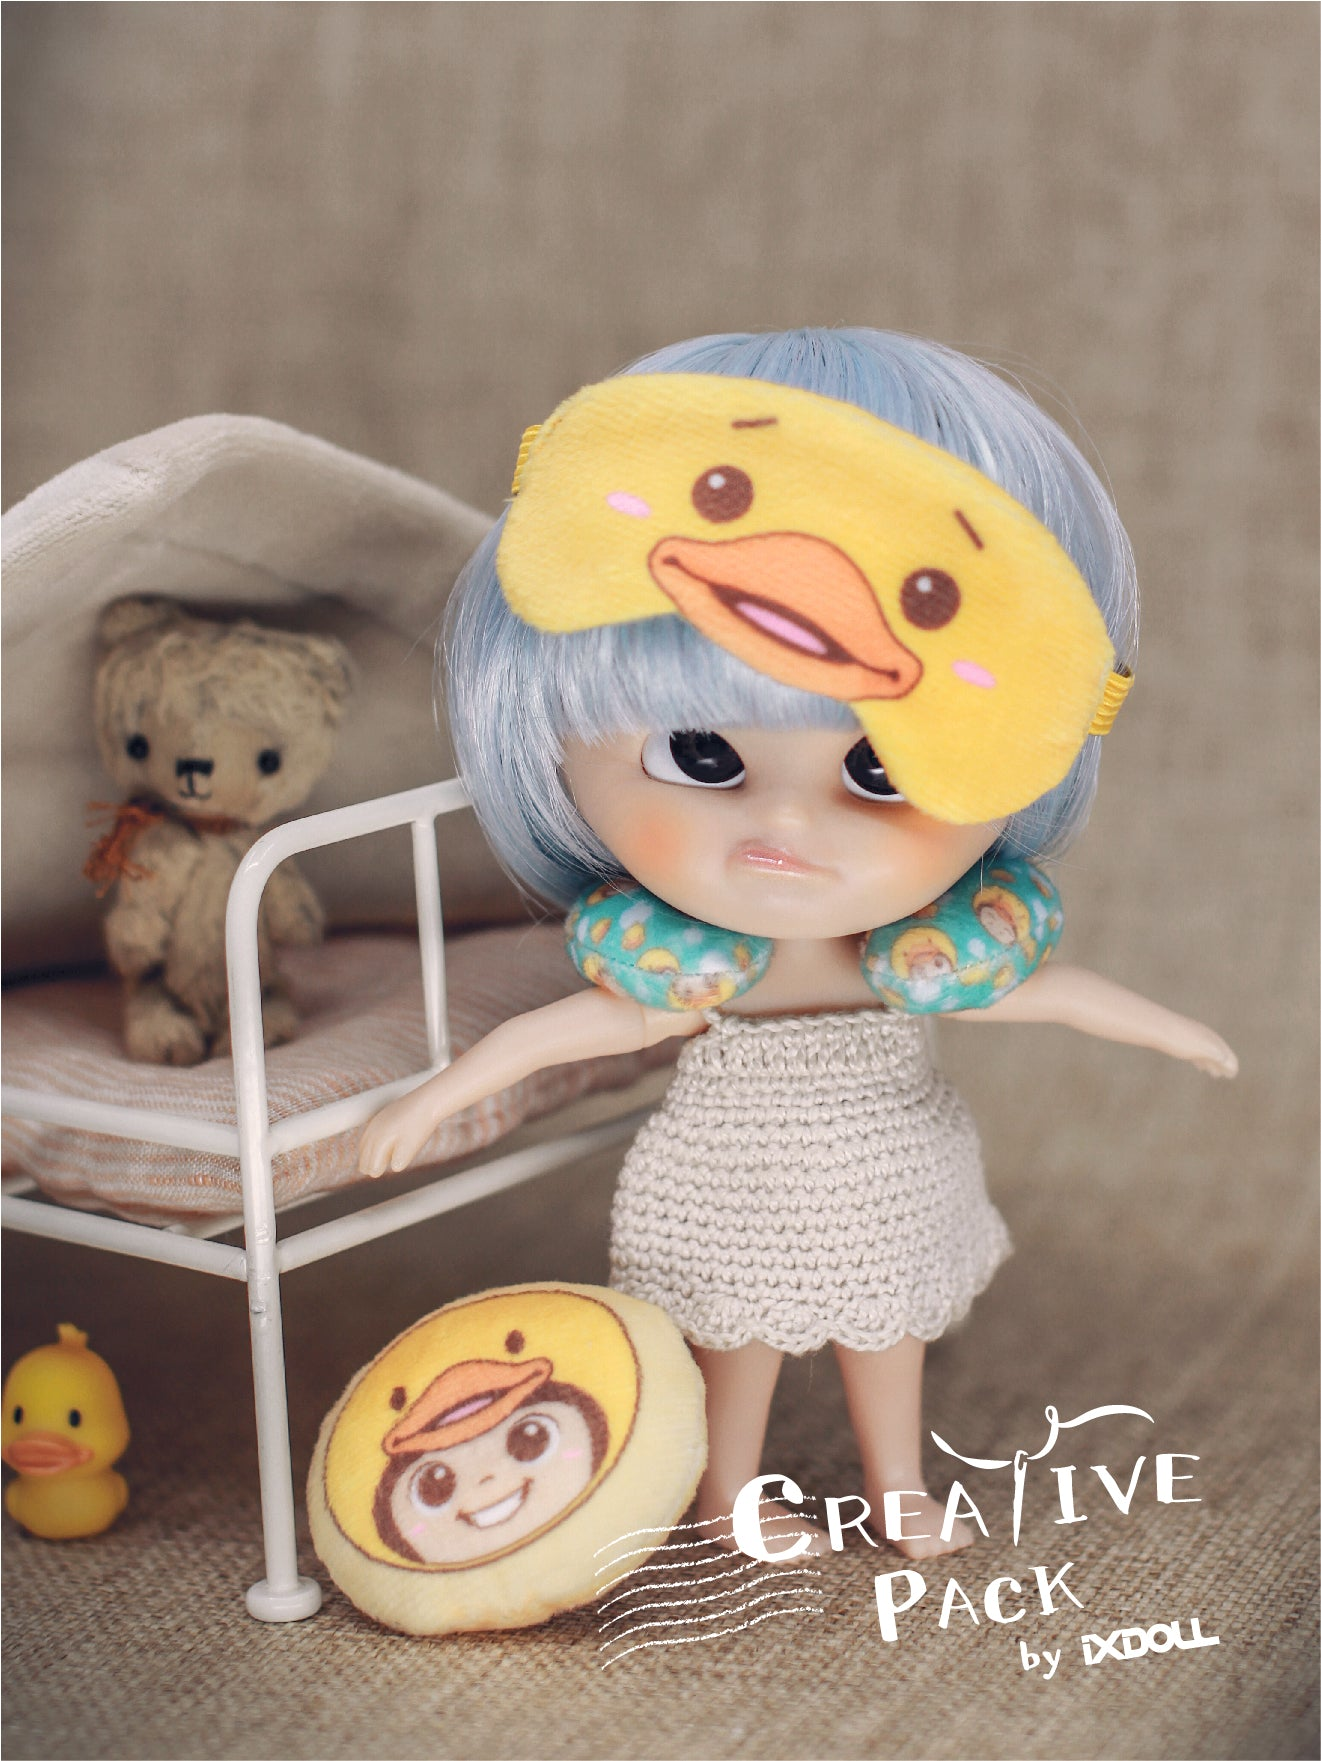 [MDIY02] Bubu Ducky Creative Pack Set B